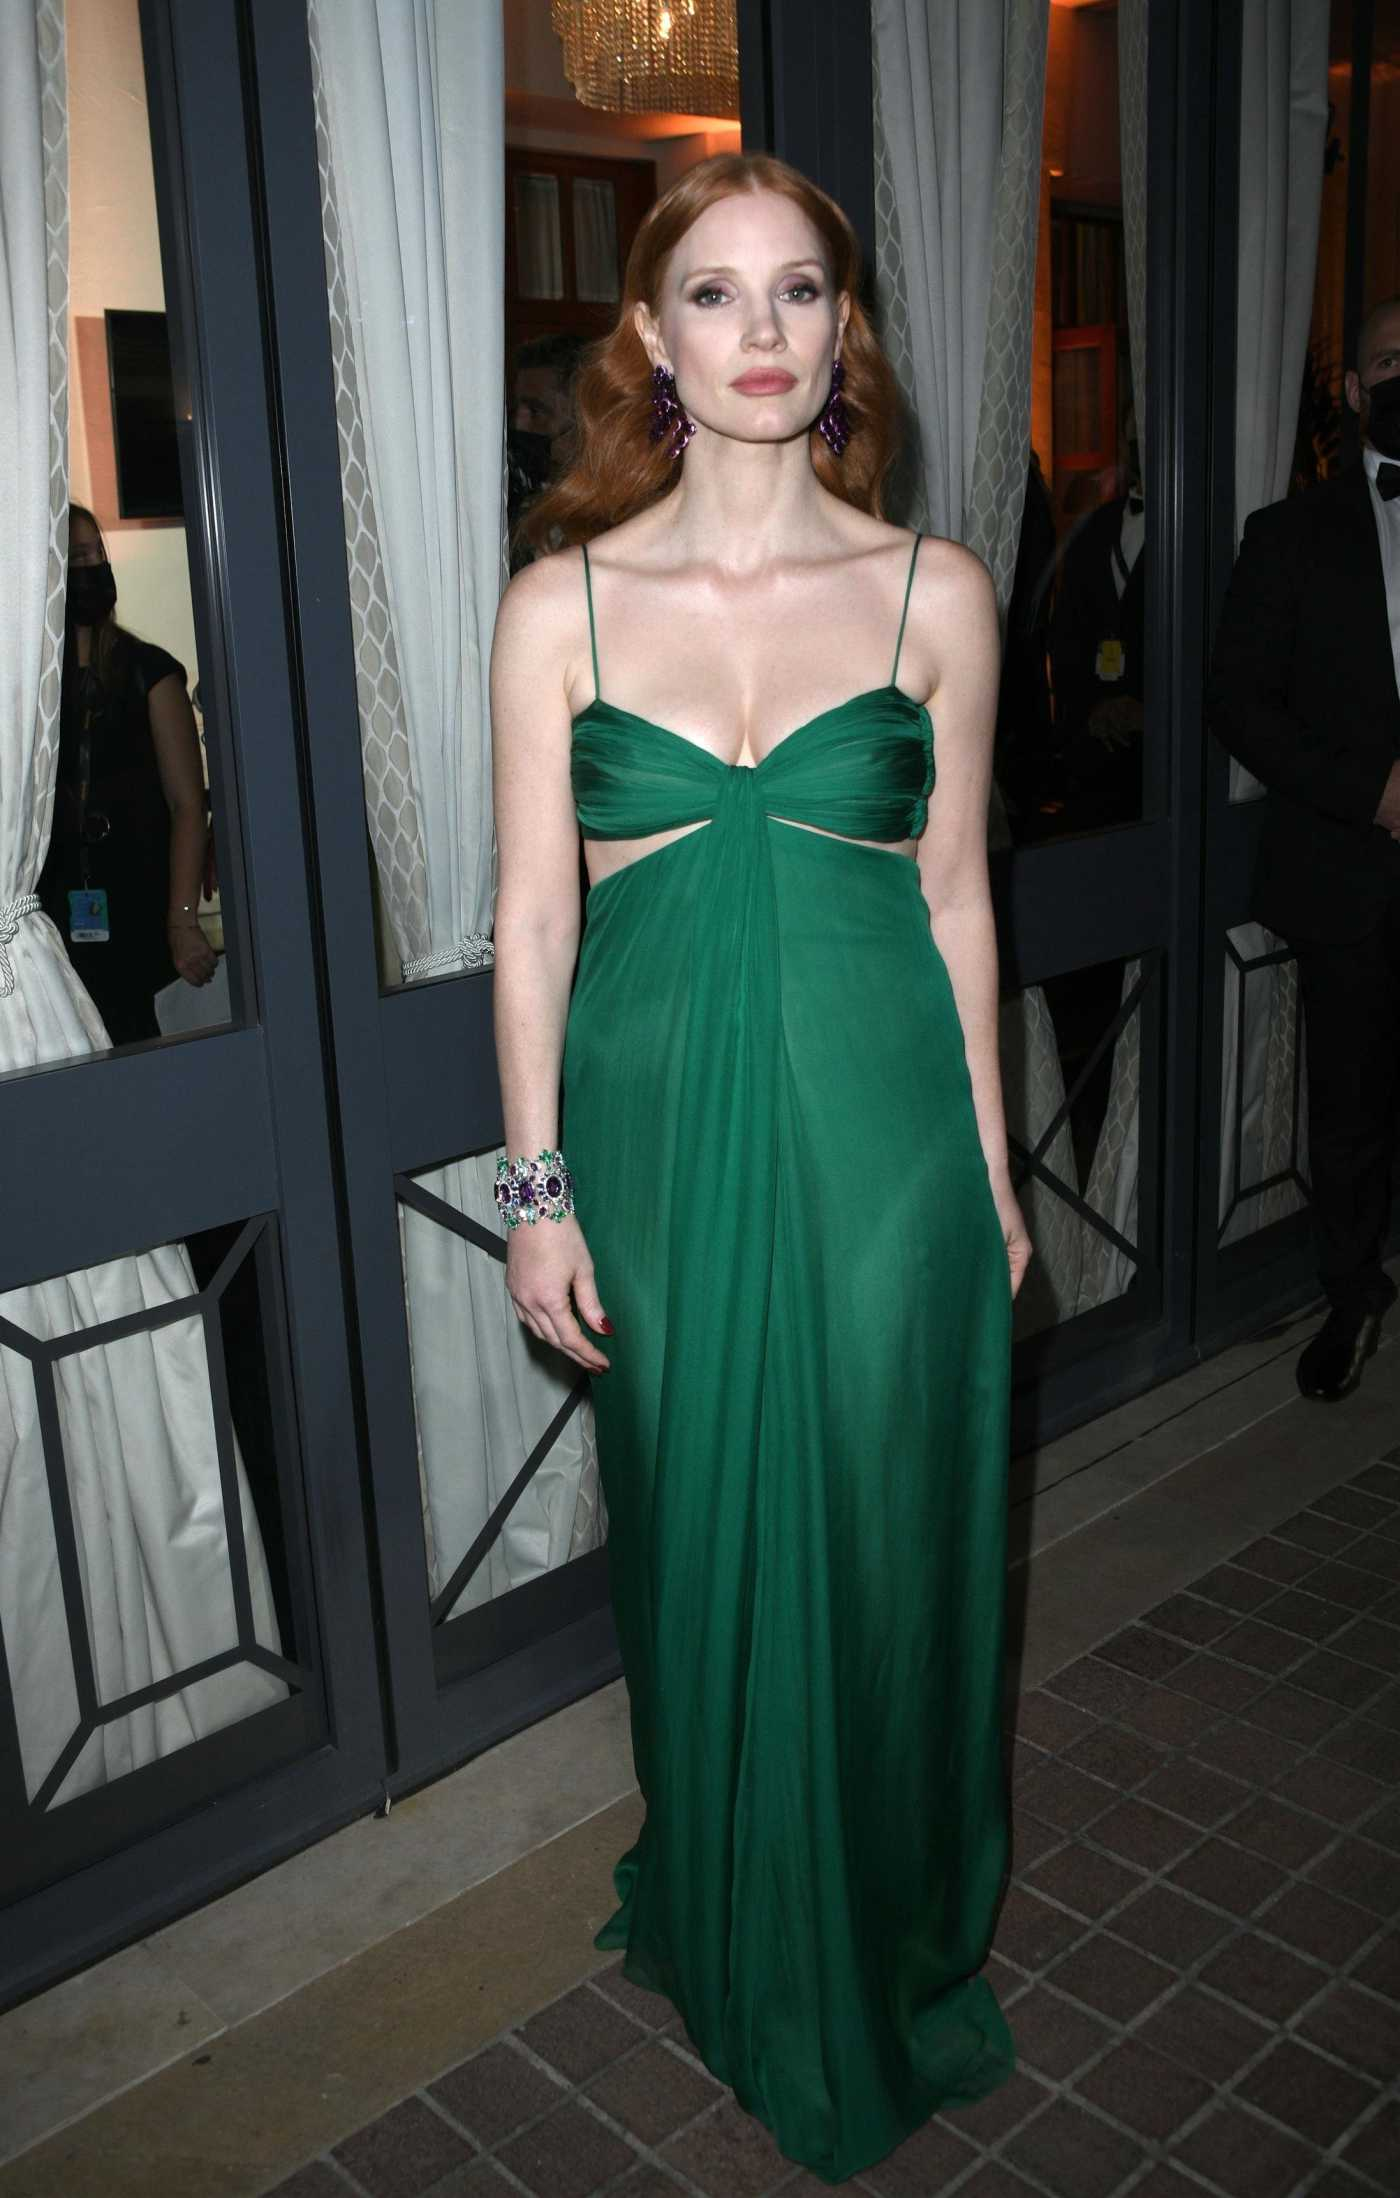 Jessica Chastain in a Green Dress Arrives at the Photocall Ahead of the Chopard Trophy Dinner in Cannes 07/09/2021